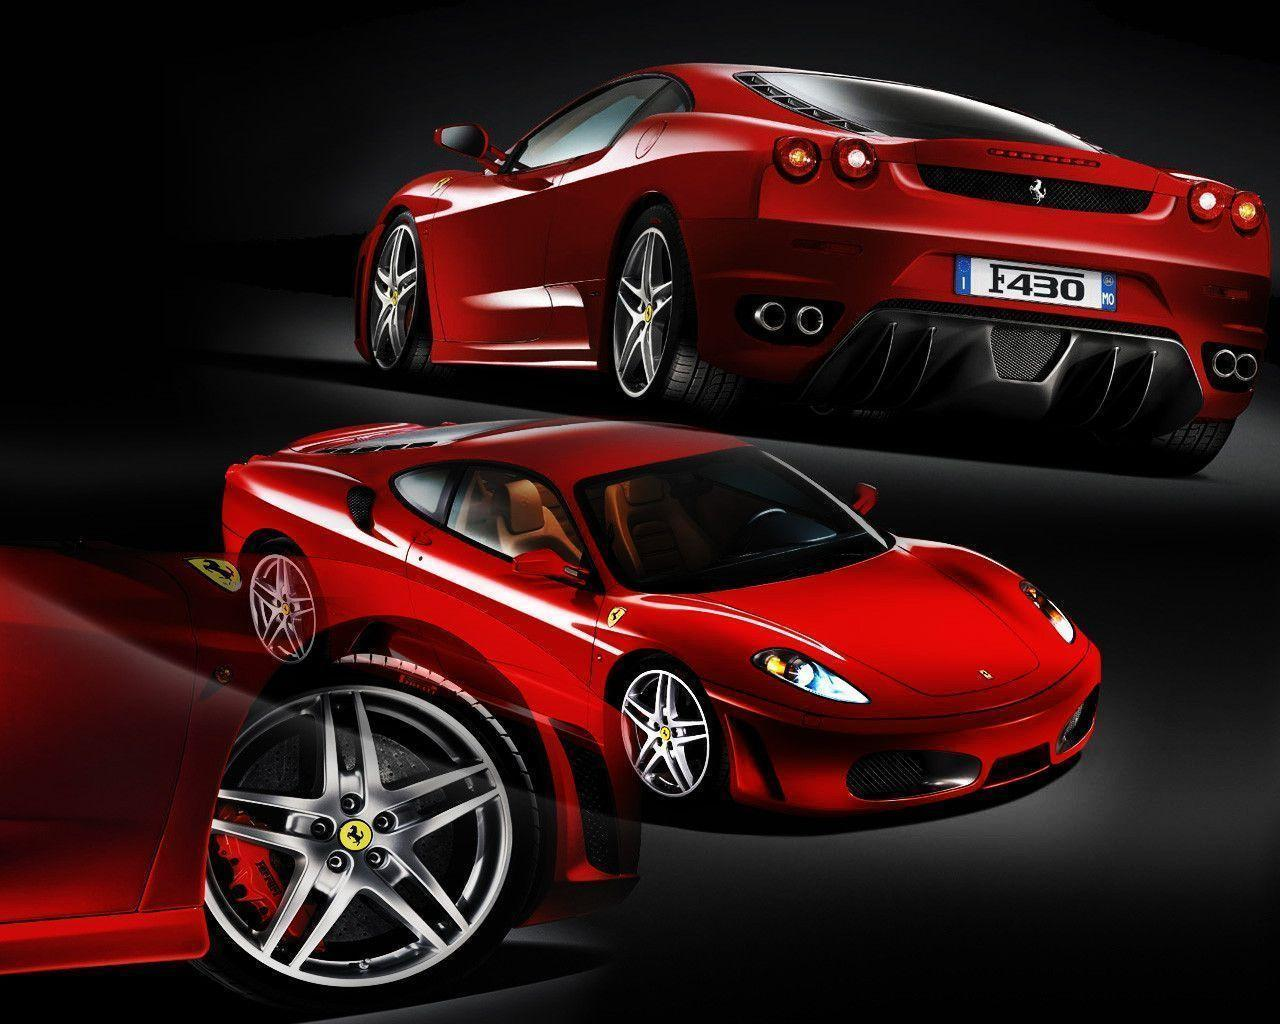 FunMozar – Red Ferrari Wallpapers